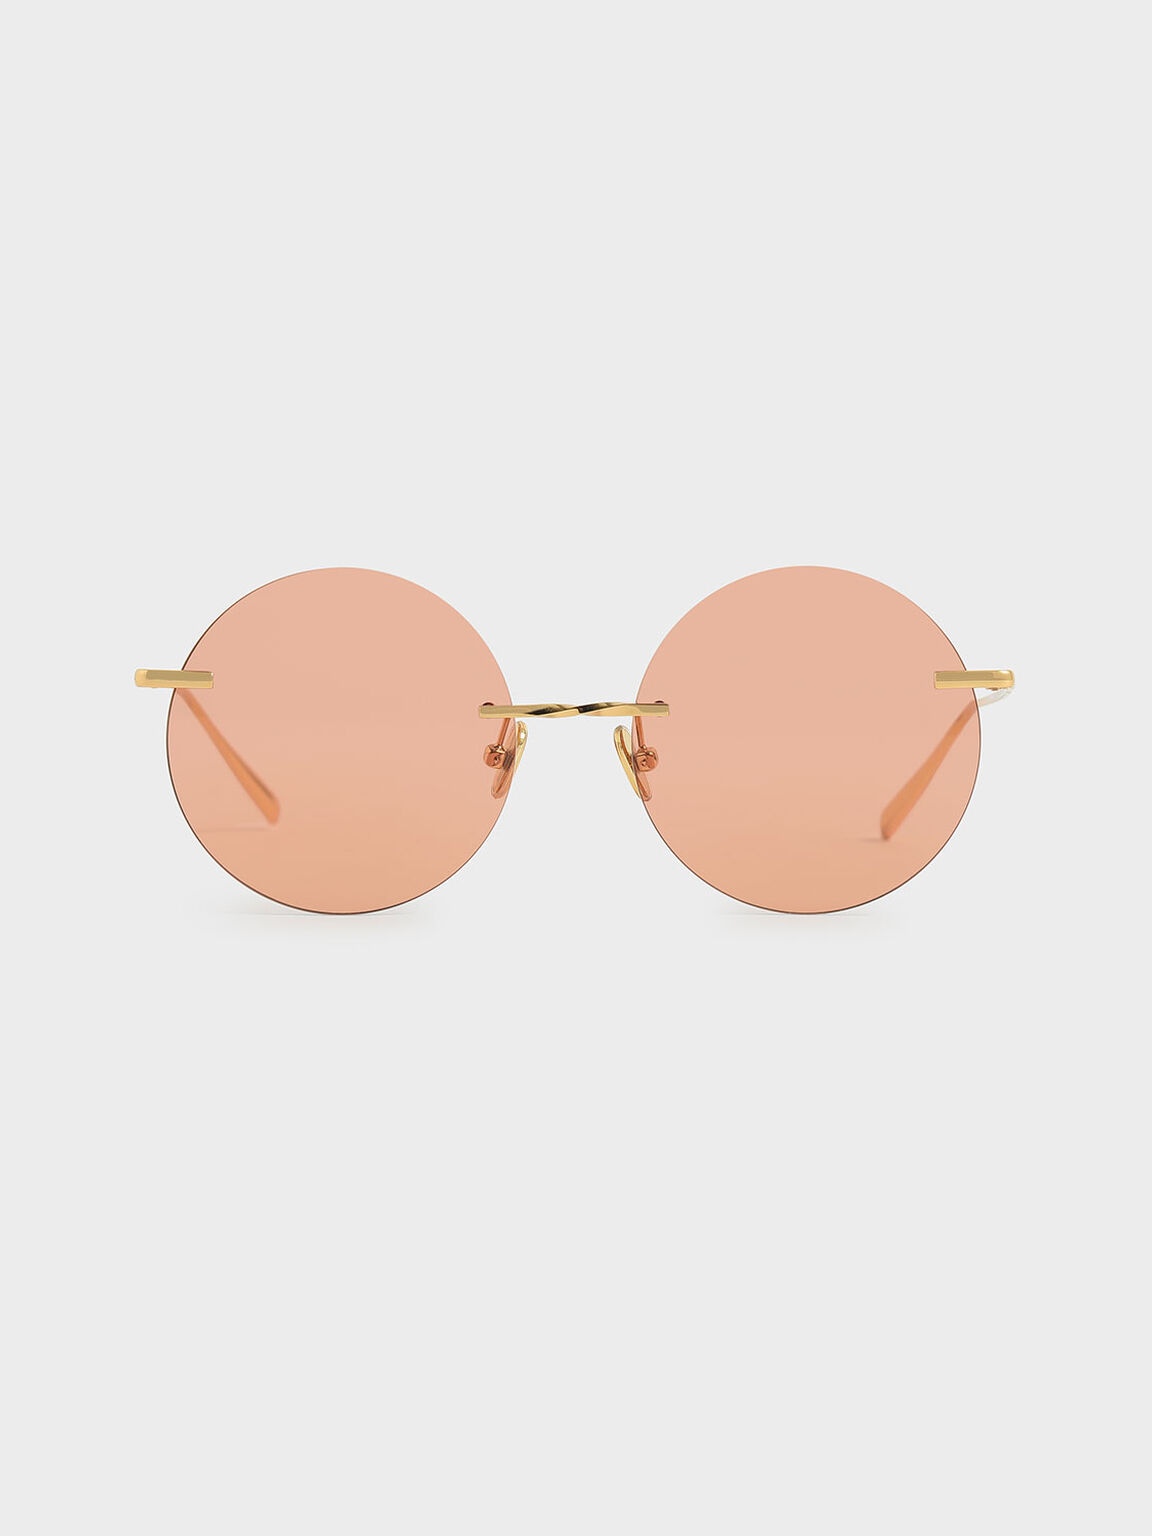 Round Rimless Sunglasses, Orange, hi-res